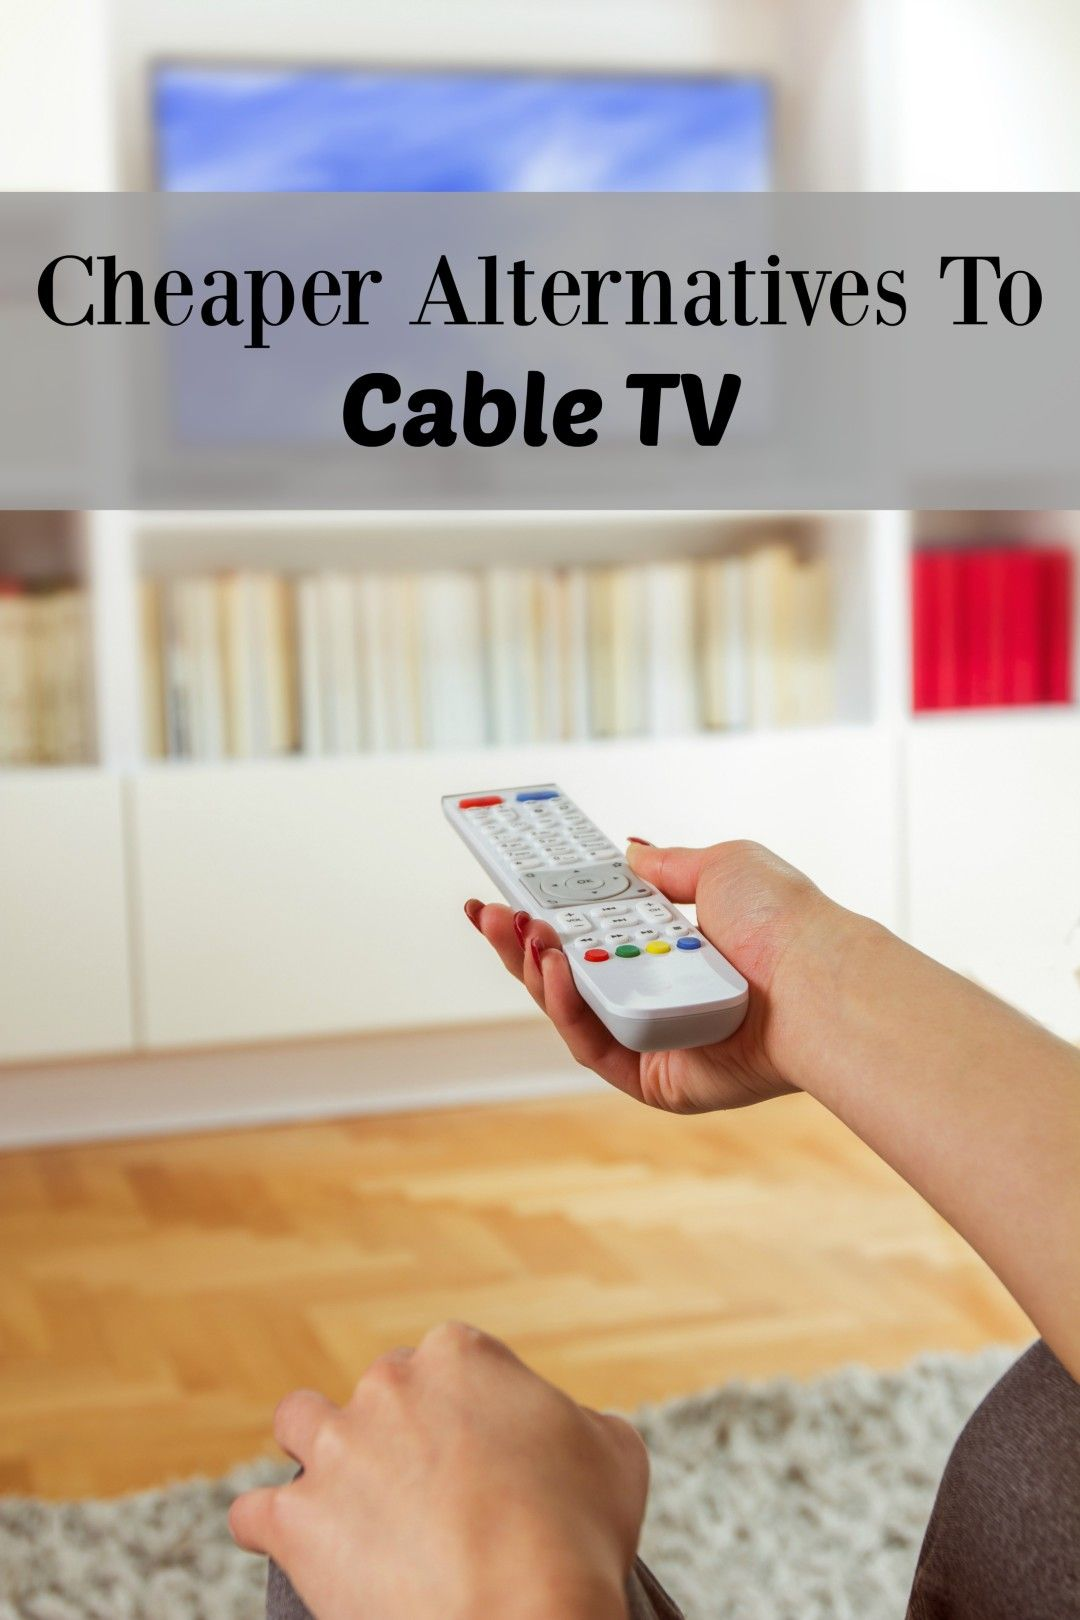 Cheaper Alternatives To Cable TV  Money Savers  Pinterest  Cable